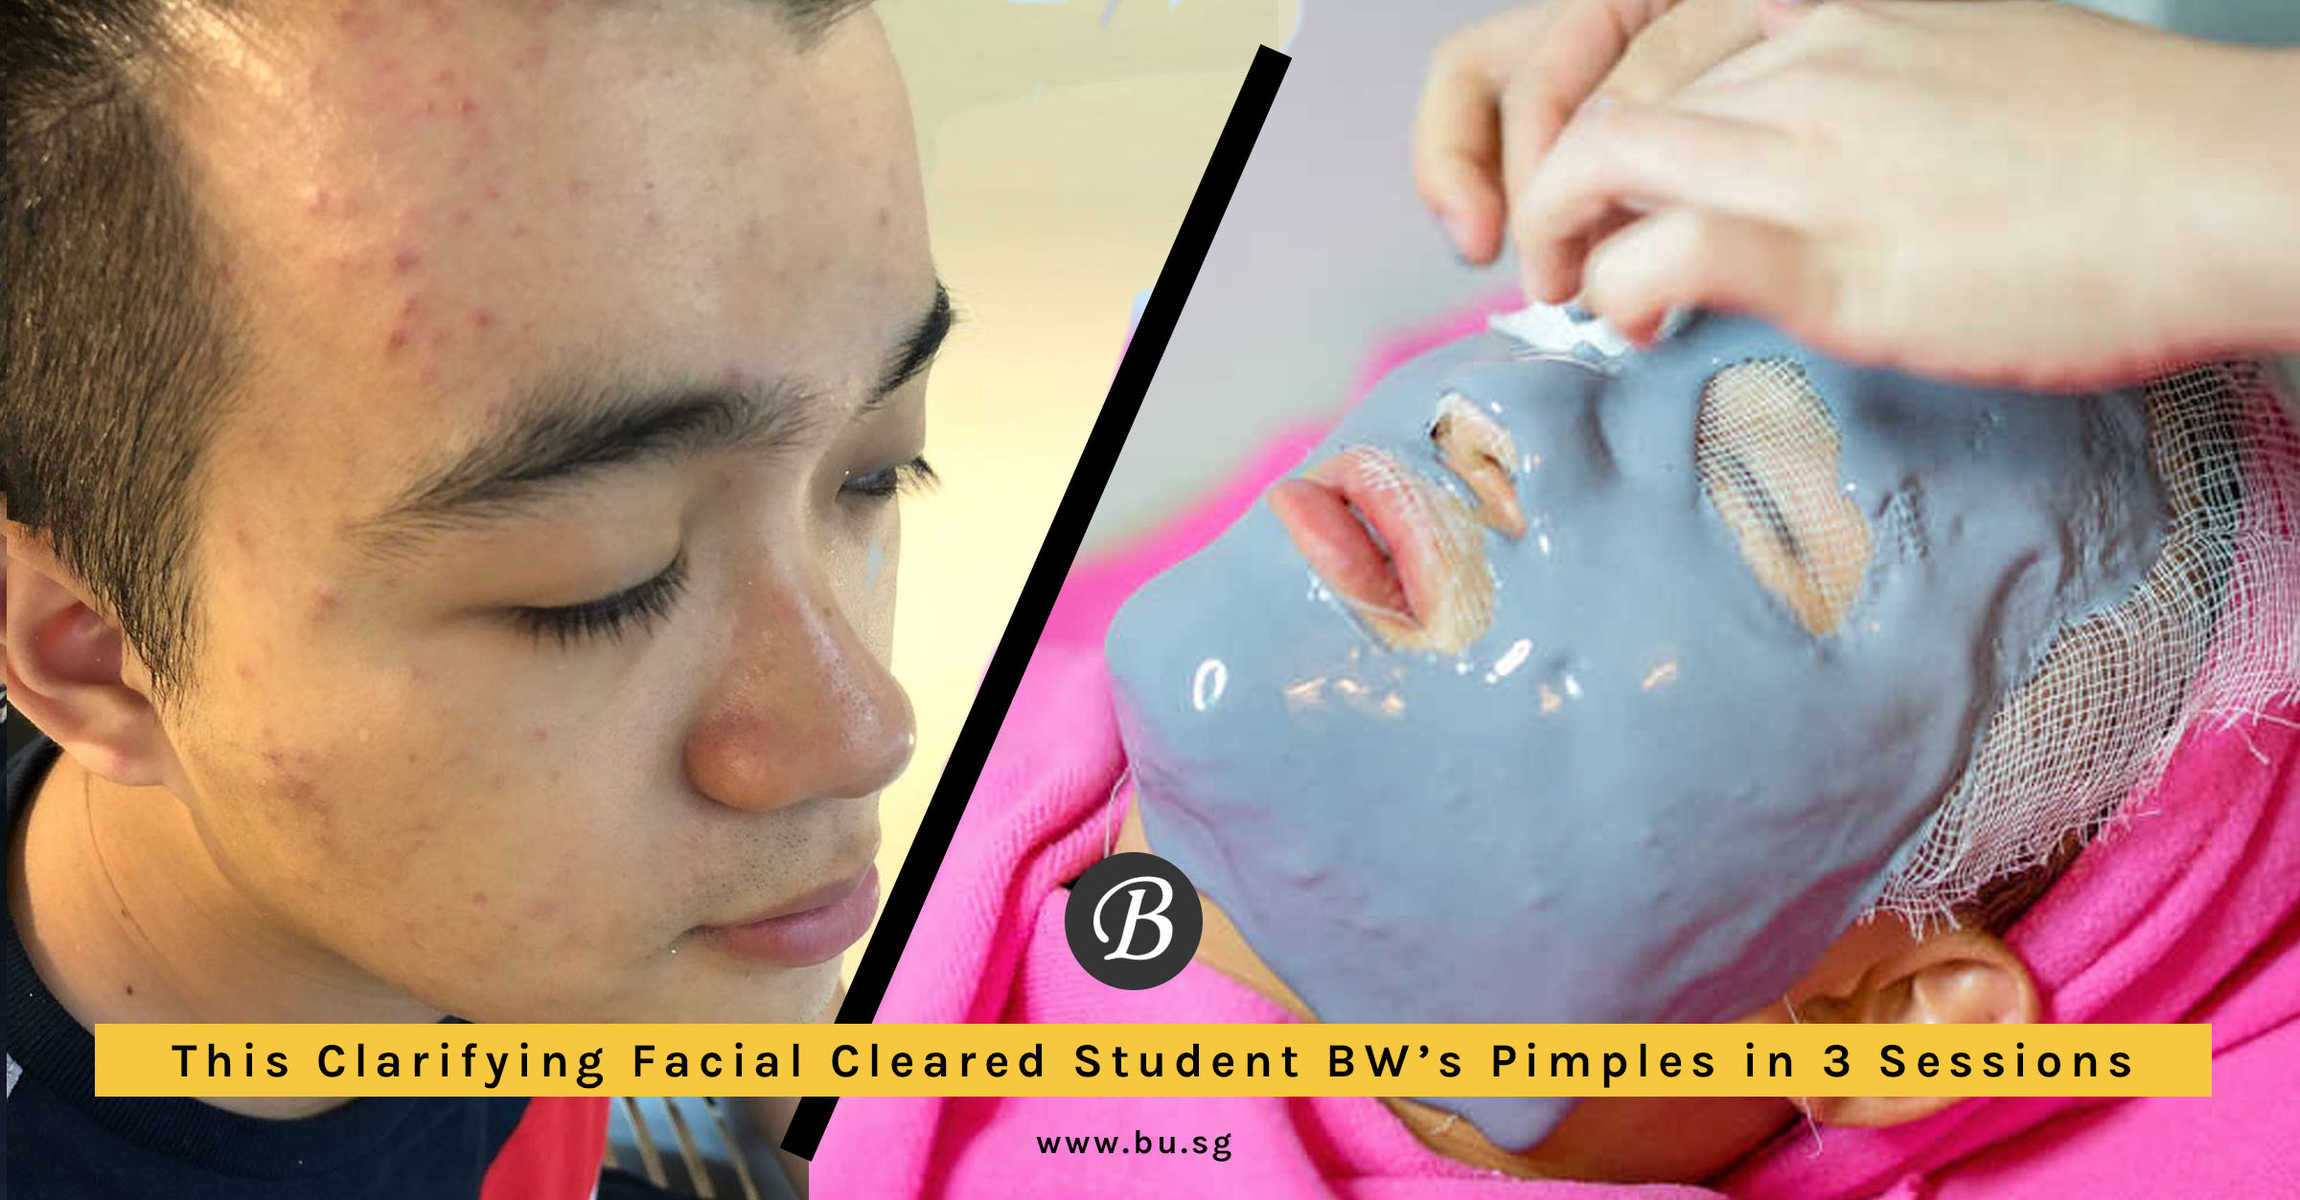 Student BW Sees an Improvement in Acne After Going for Clarifying Facial Here.